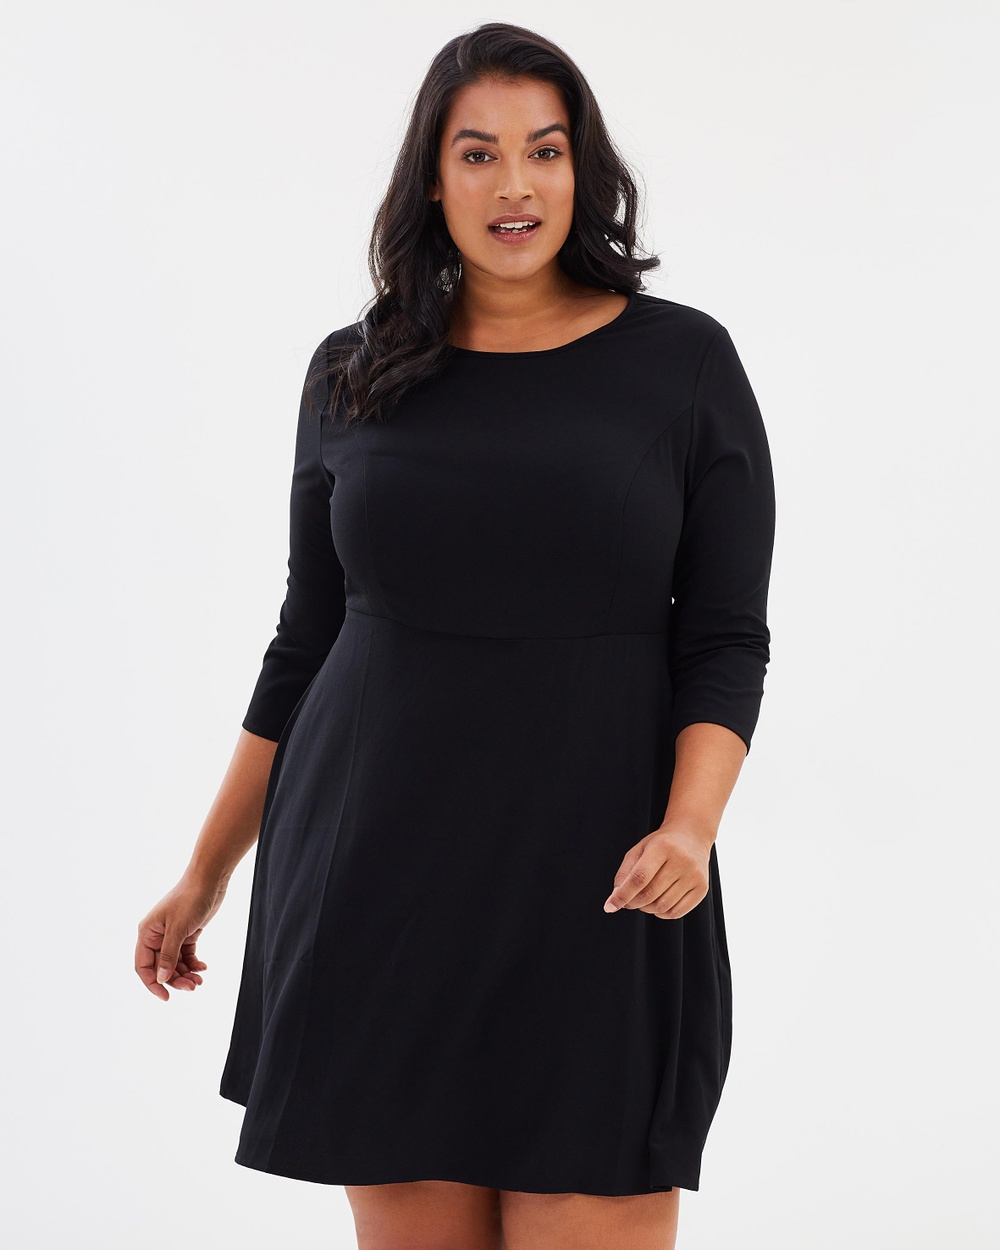 Atmos & Here Curvy ICONIC EXCLUSIVE Michelle Fit & Flare Dress Dresses Black ICONIC EXCLUSIVE Michelle Fit & Flare Dress